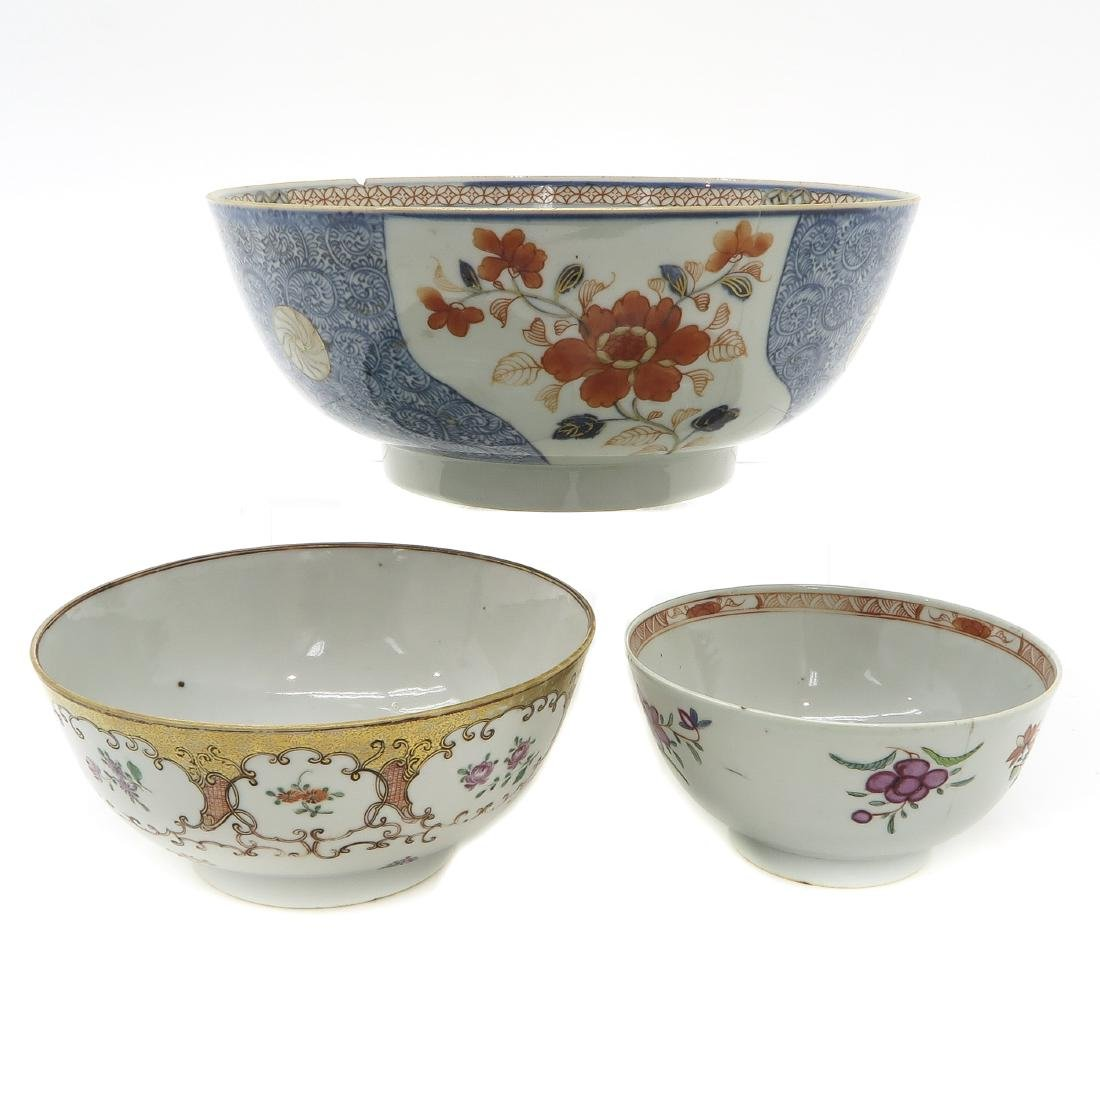 Lot of 3 Bowls - 4